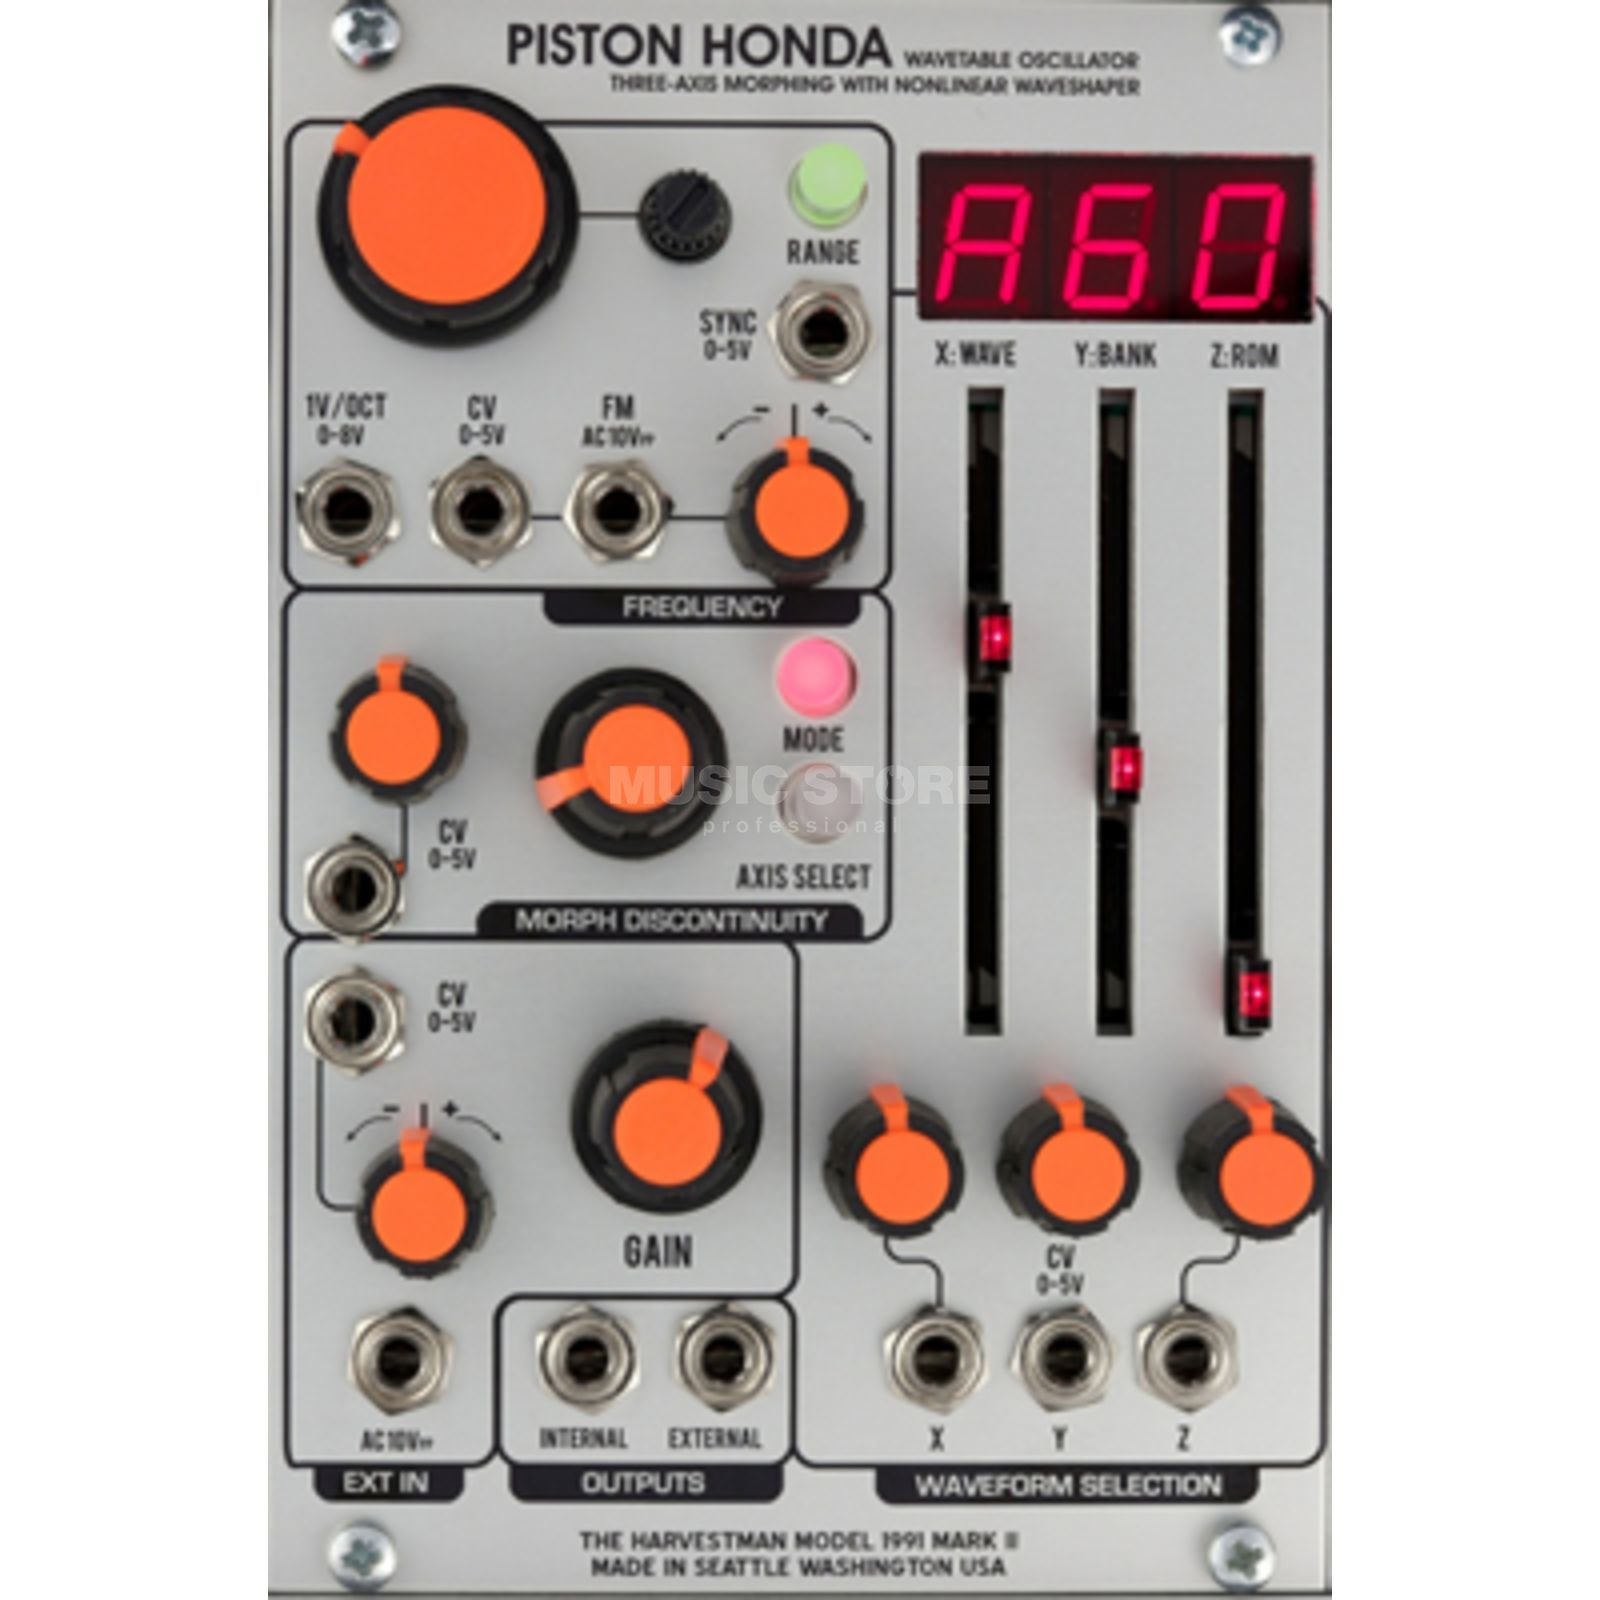 The Harvestman Piston Honda MK2 Wavetable Oscillator Image du produit